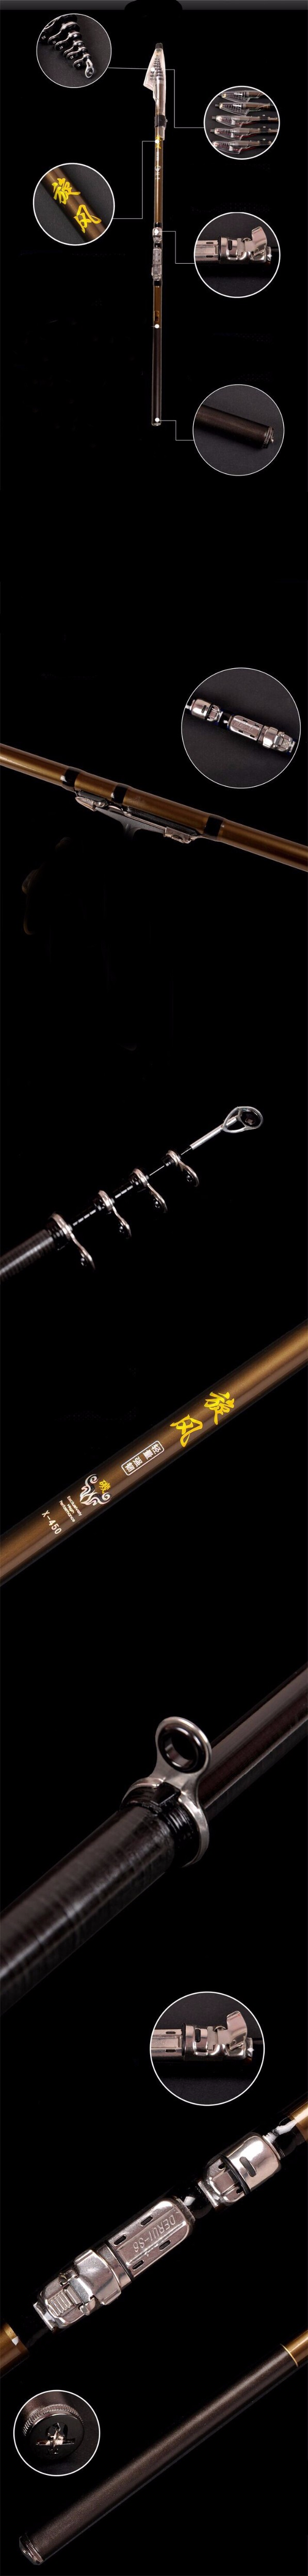 17 The latest design of fishing rod Stream Hand Carbon Fiber Casting Telescopic Lightweight toughness Fishing Rods 4